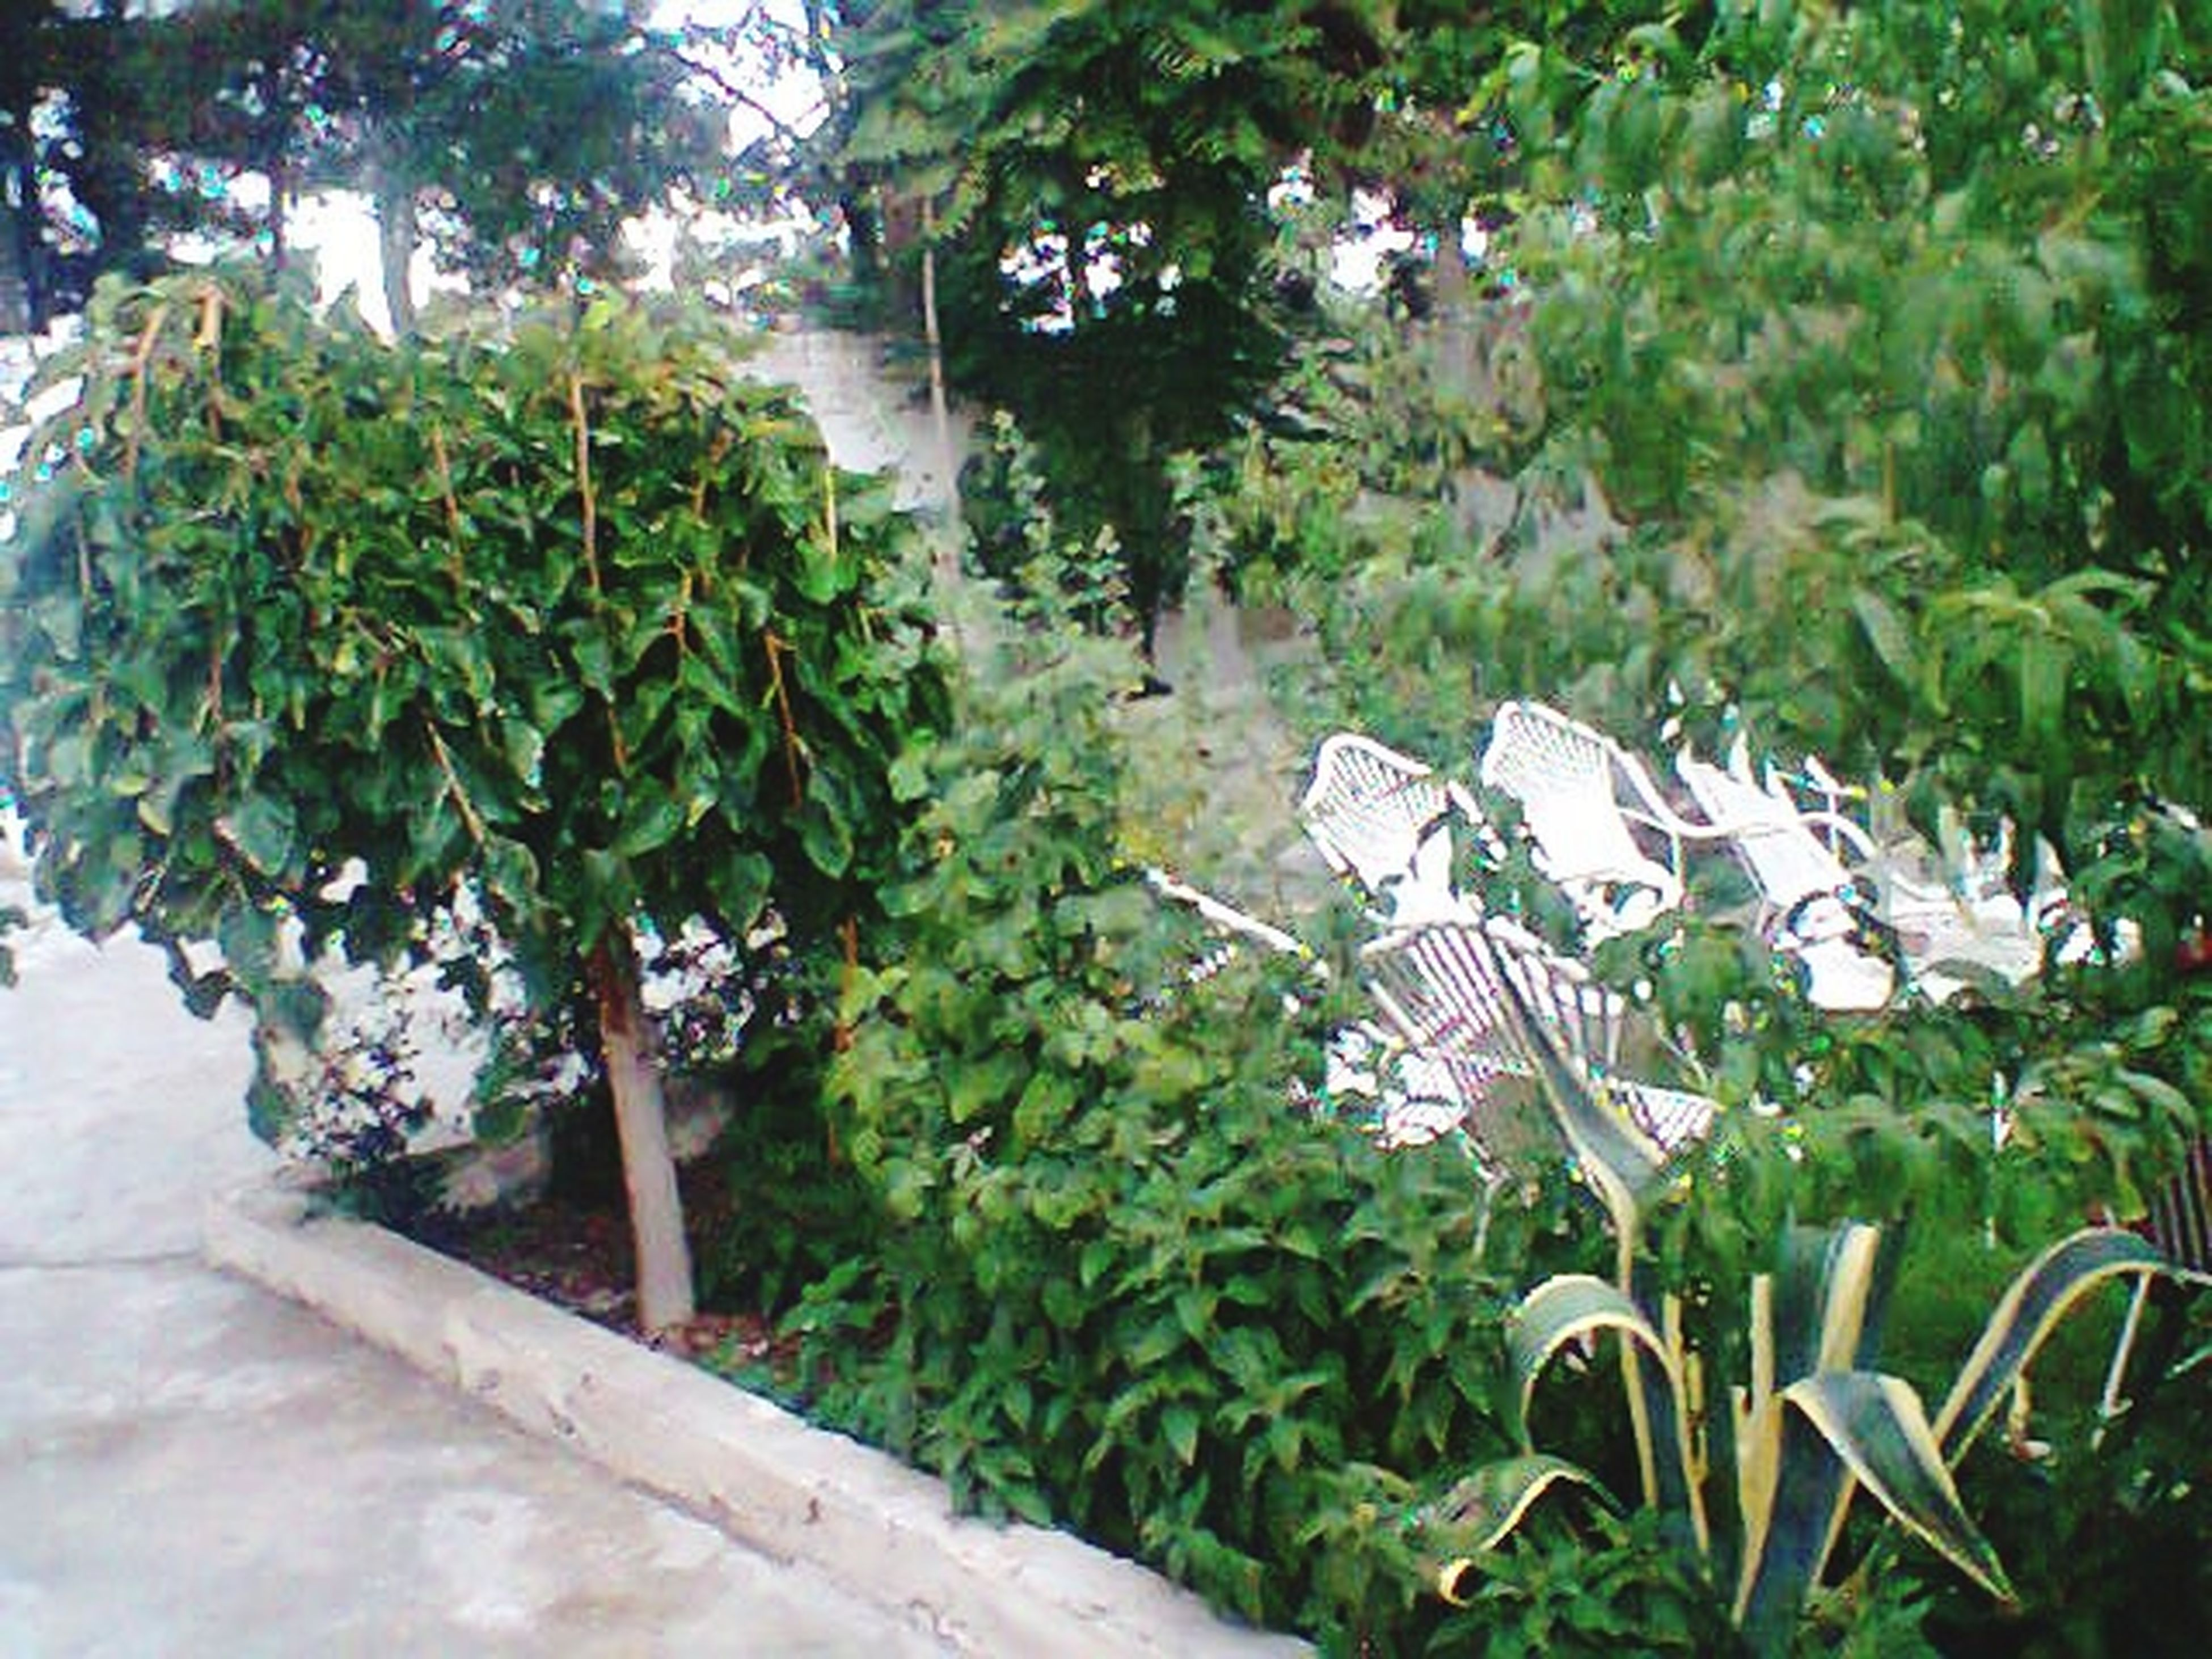 growth, plant, nature, leaf, no people, outdoors, tree, beauty in nature, day, greenhouse